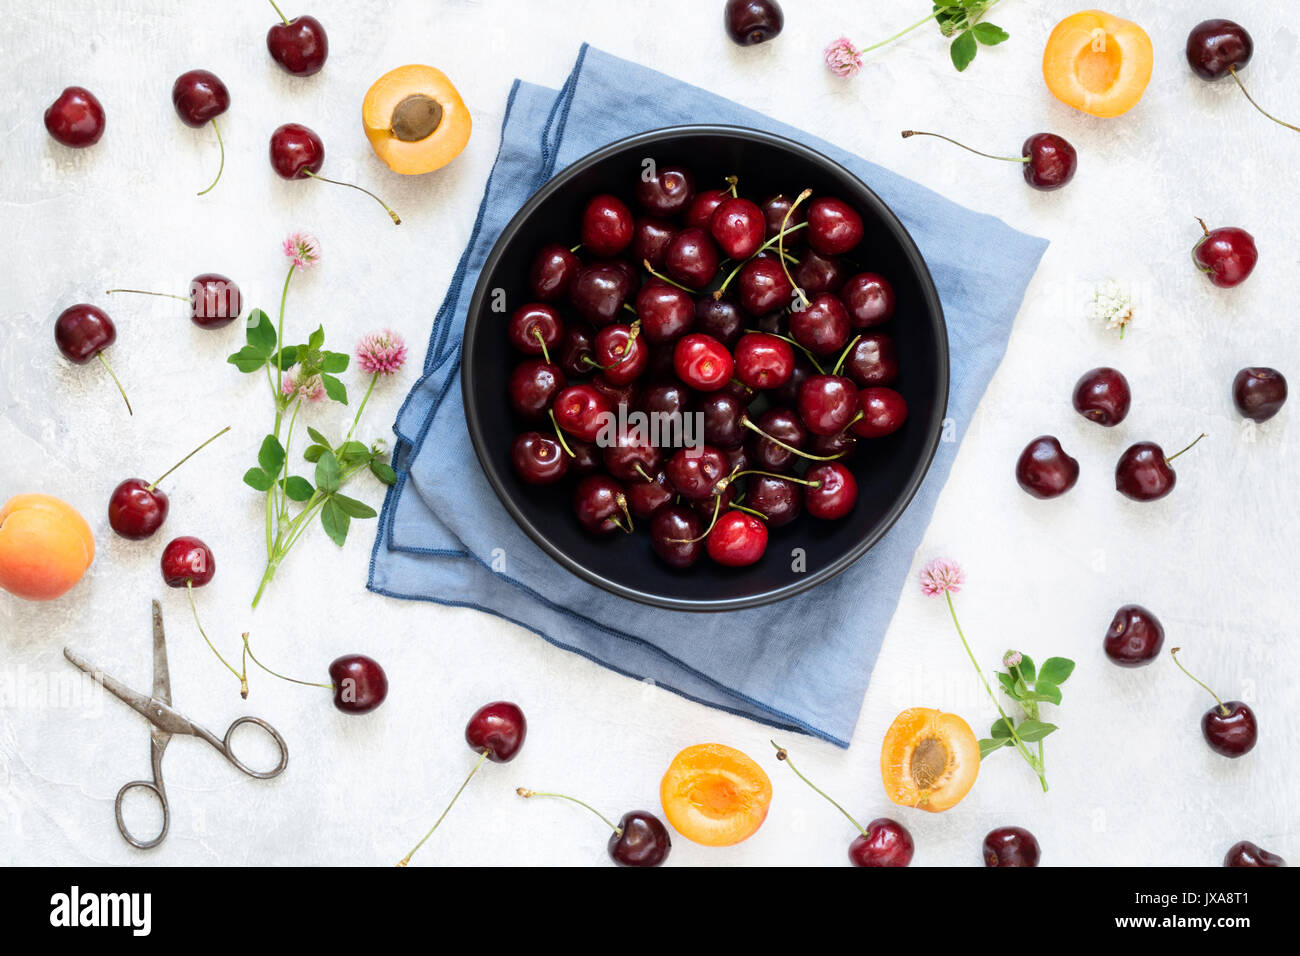 Sweet cherries in black bowl on bright grey background. Flat lay top view - Stock Image